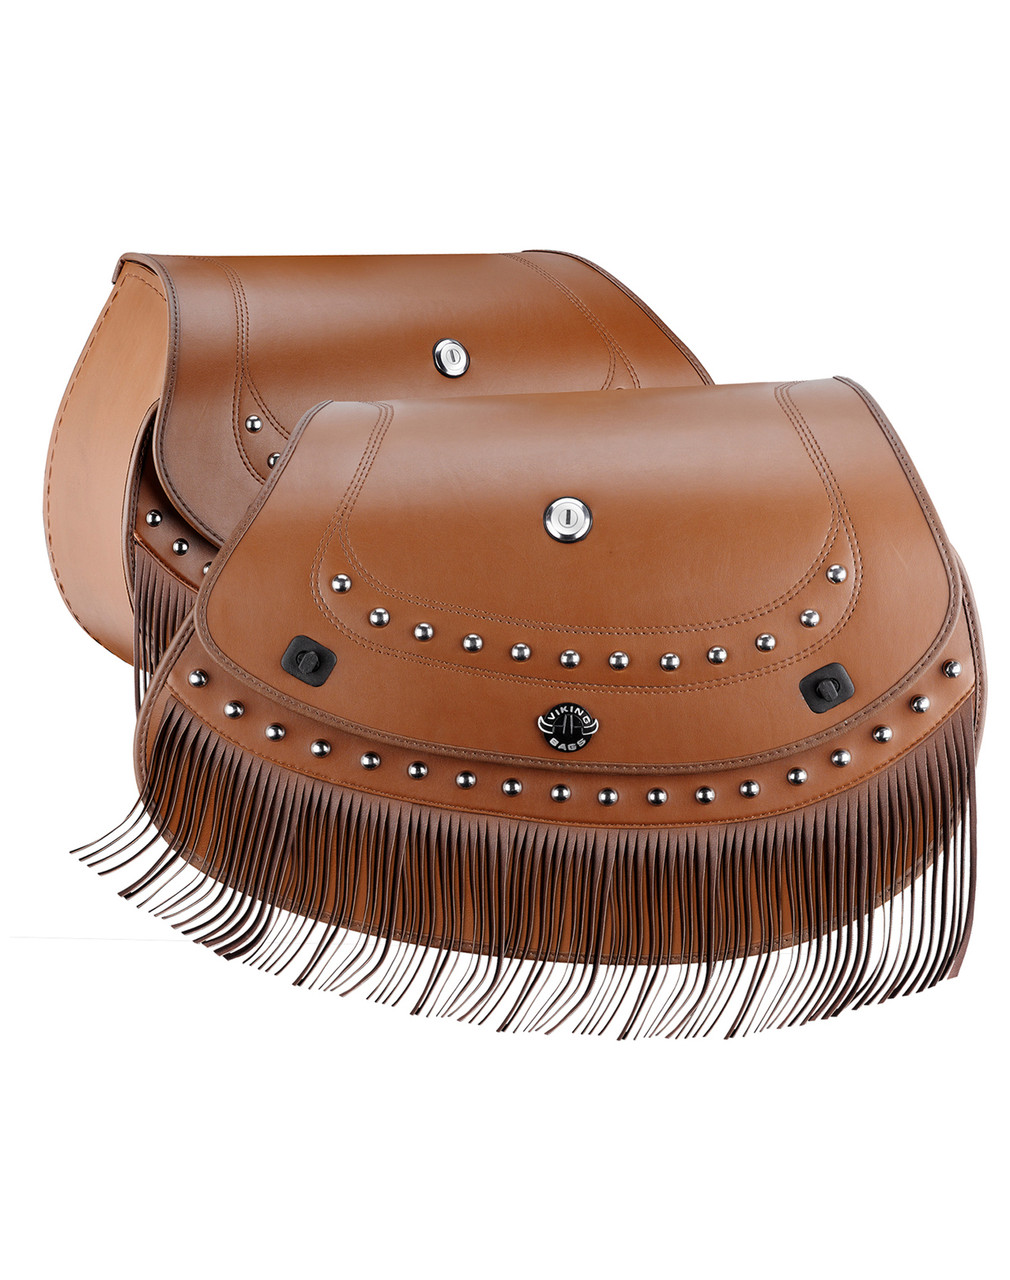 Indian Chief Classic Viking Indian Specific Brown Leather Motorcycle Saddlebags Both Bags View